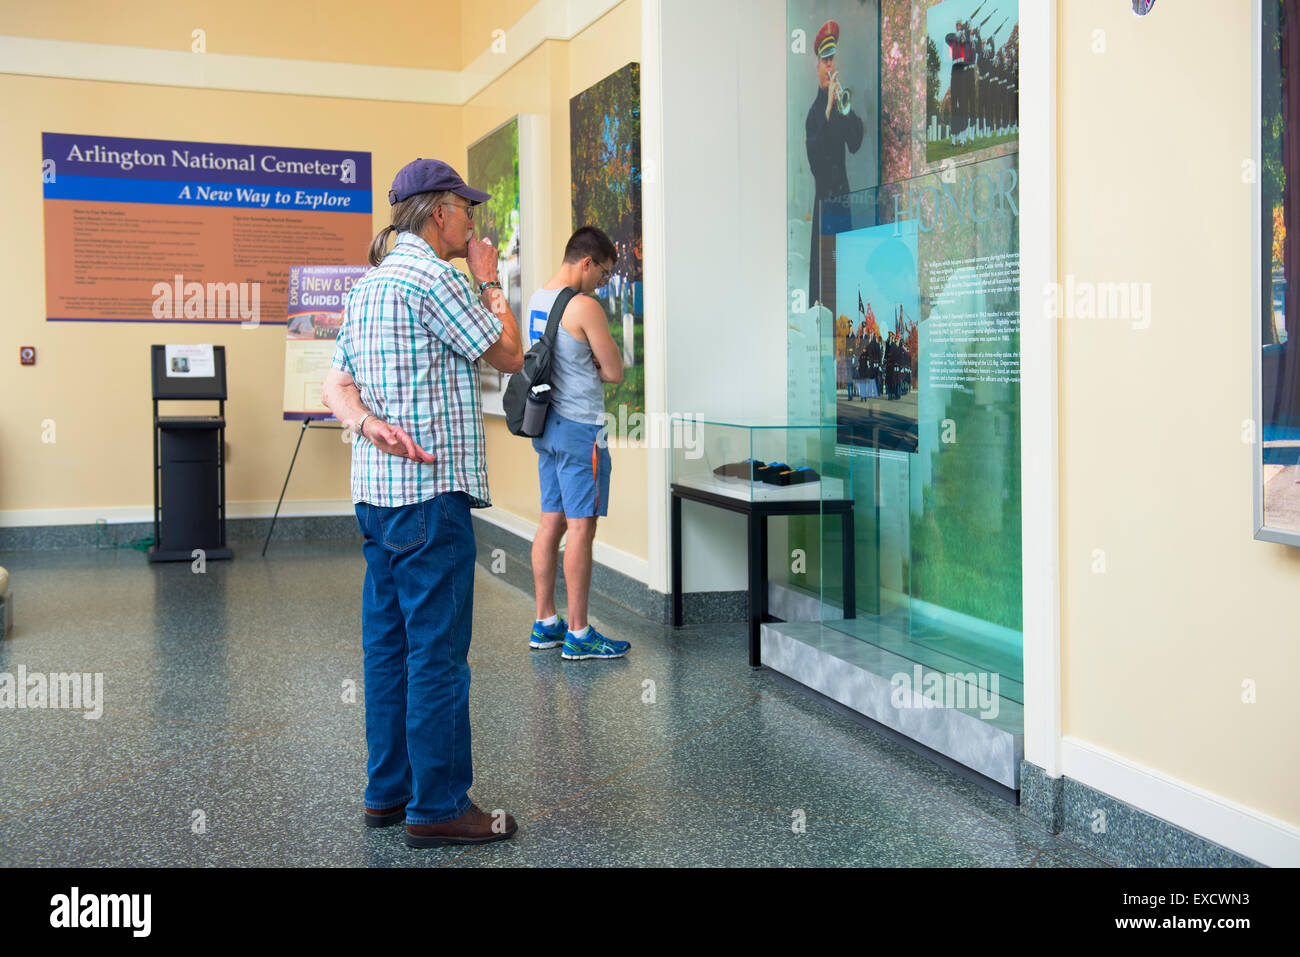 Welcome Center, Arlington National Cemetery, Virginia - Stock Image